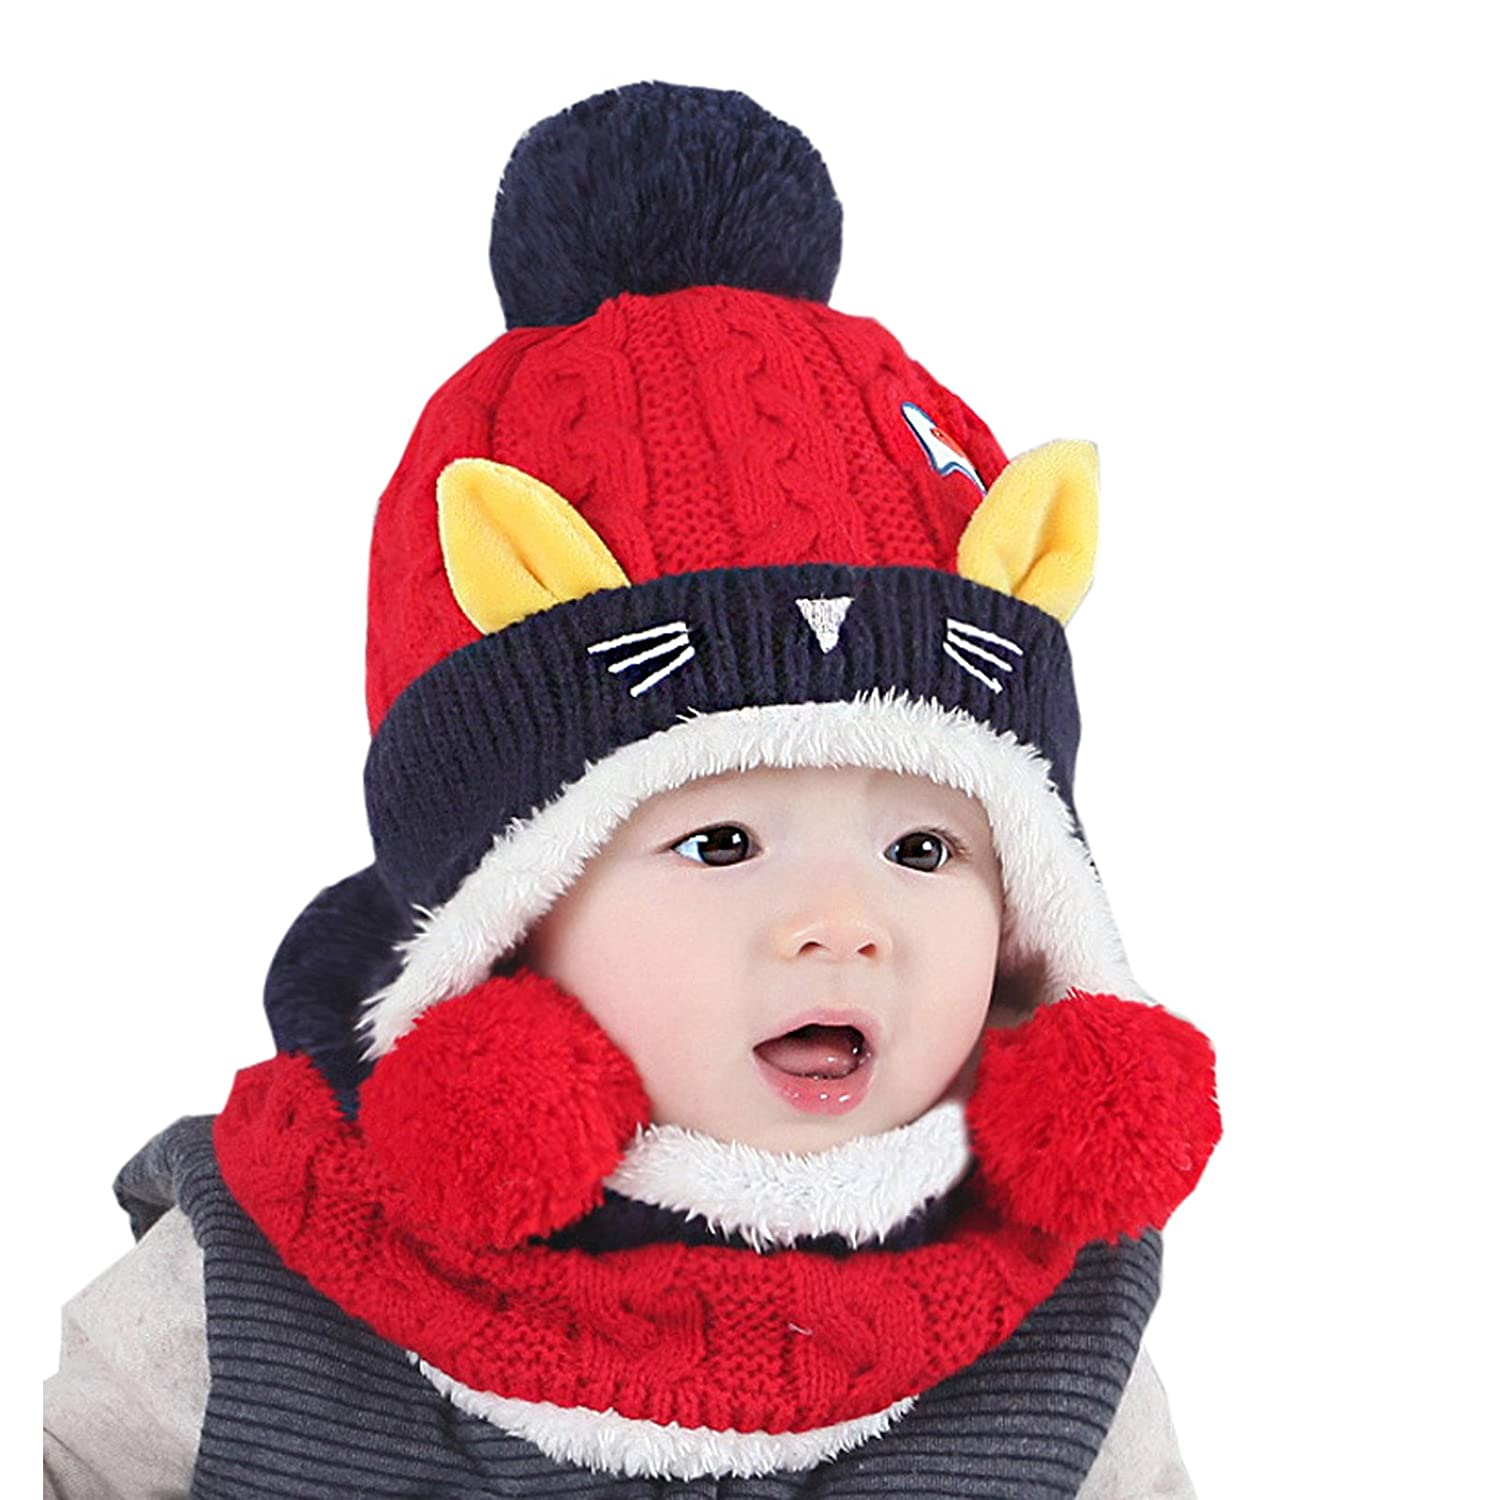 Elonglin Unisex Baby Toddler Kids Knitted Hoodie Scarf Caps Winter Autumn Warm Cute Cat Hooded Scarf Hats Head Scarf Neck Warmer With Soft Plush Lining For 6 months-2 years Red EL.MZ0420-B